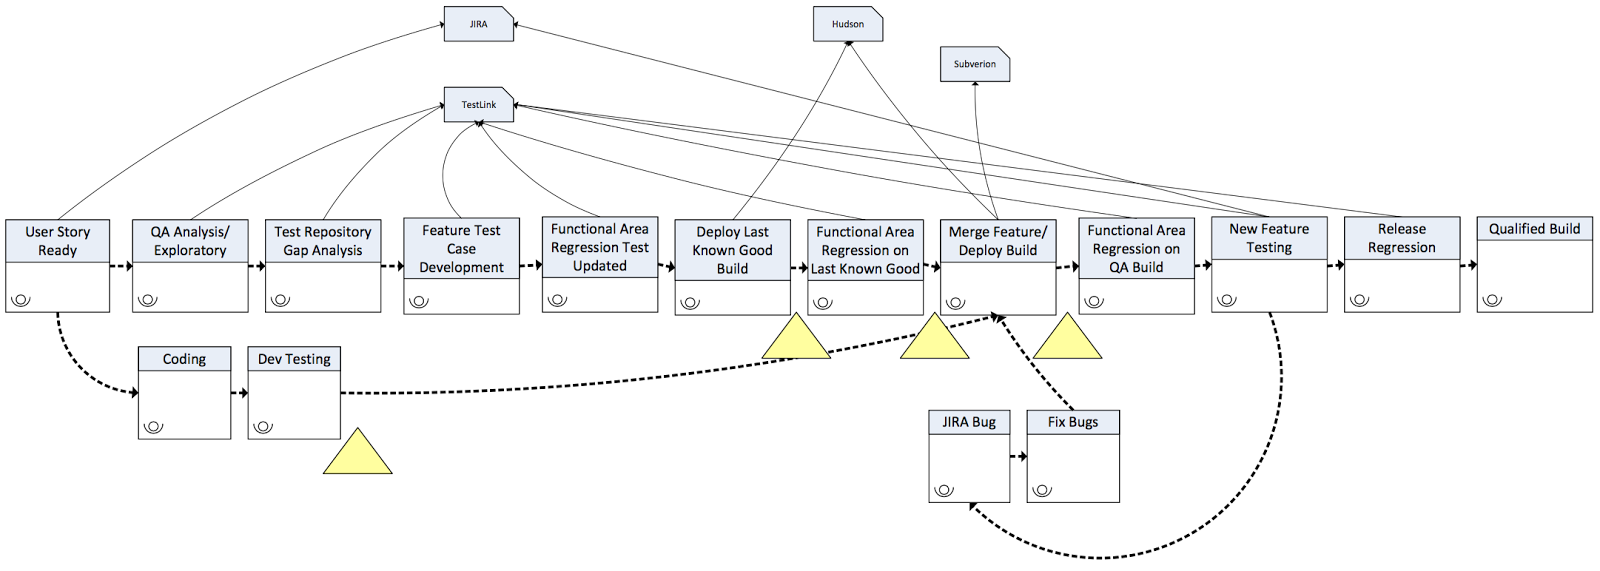 Sridhar Peddisetty's Space: Value Stream Mapping As A